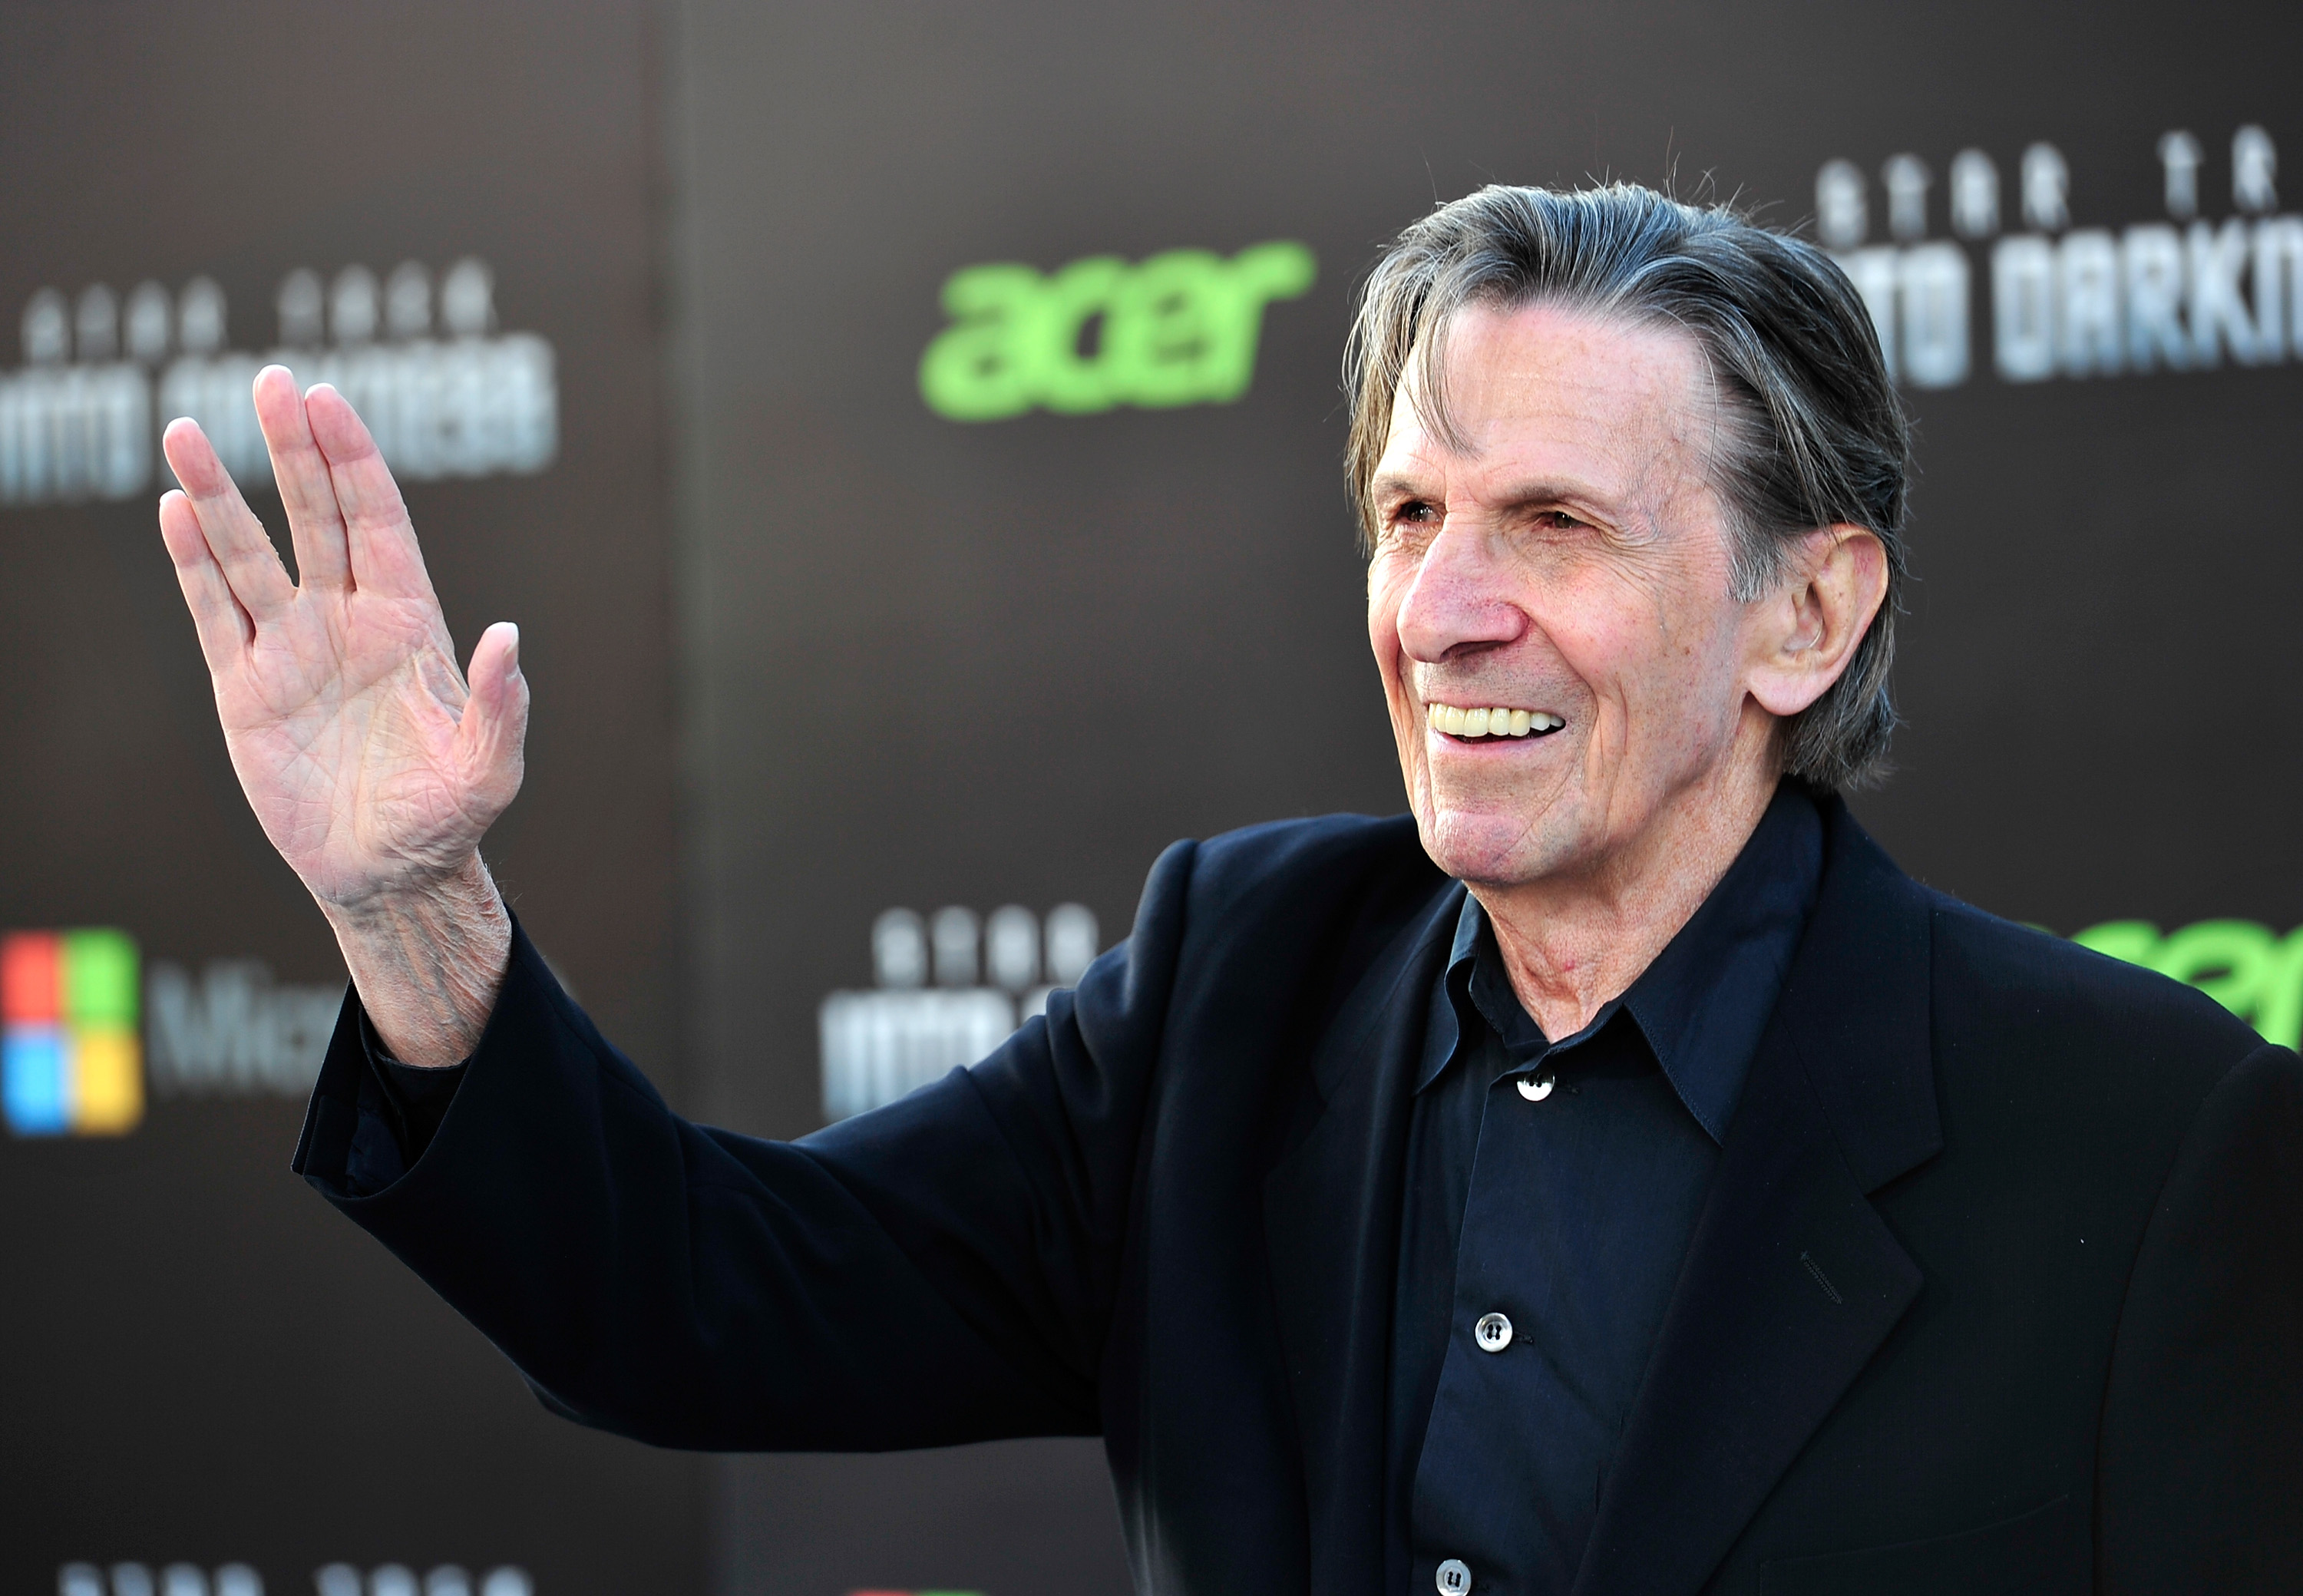 Leonard Nimoy Quotes 6 Inspirational Leonard Nimoy Quotes Because The Late Actor Gave